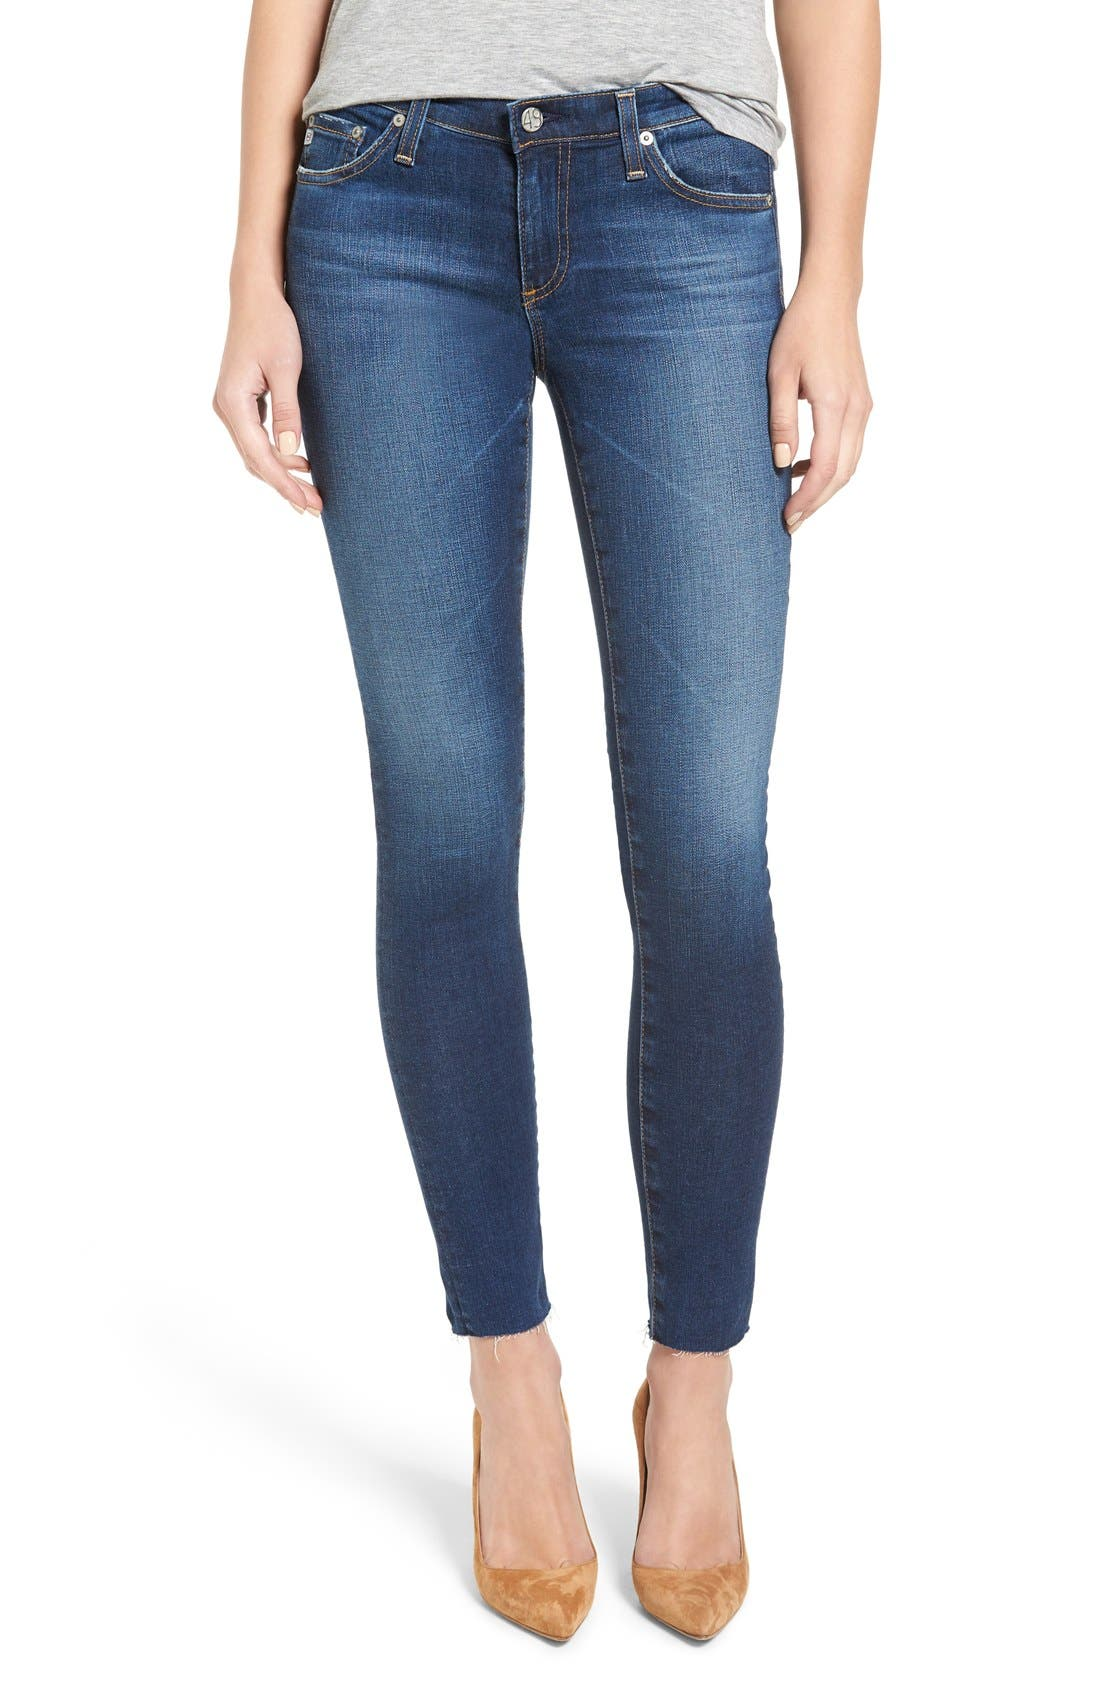 'The Legging' Ankle Jeans,                             Main thumbnail 1, color,                             7Yr Break W/ Raw Hem